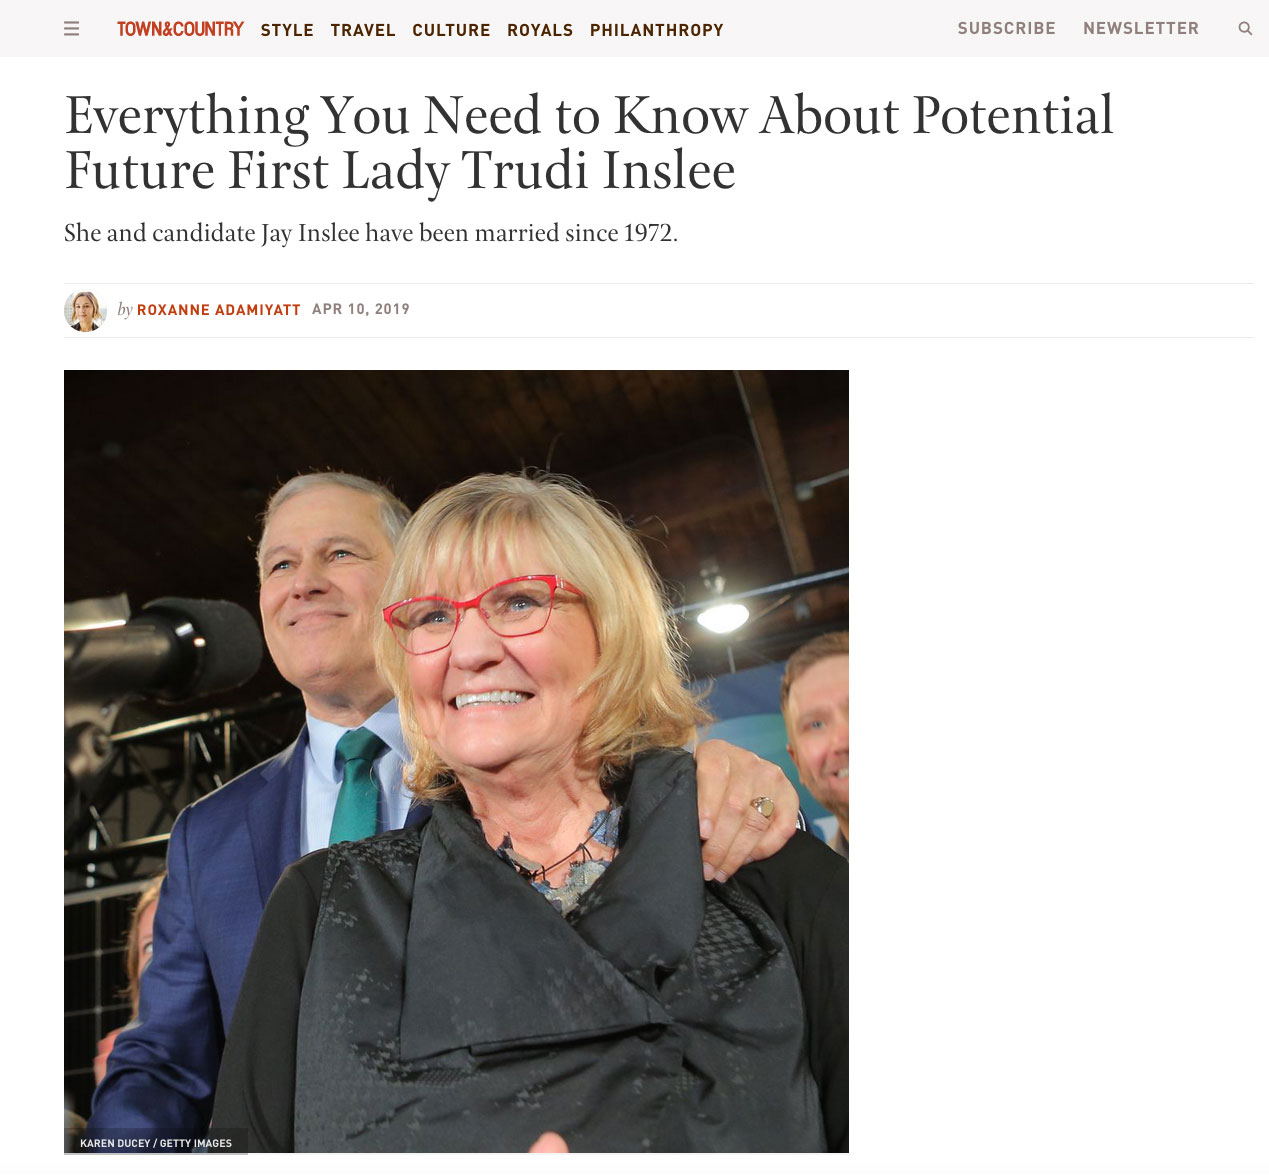 {quote}Everything You Need to Know About Potential Future First Lady Trudi Inslee{quote} Town and Country magazine, April 10, 2019.